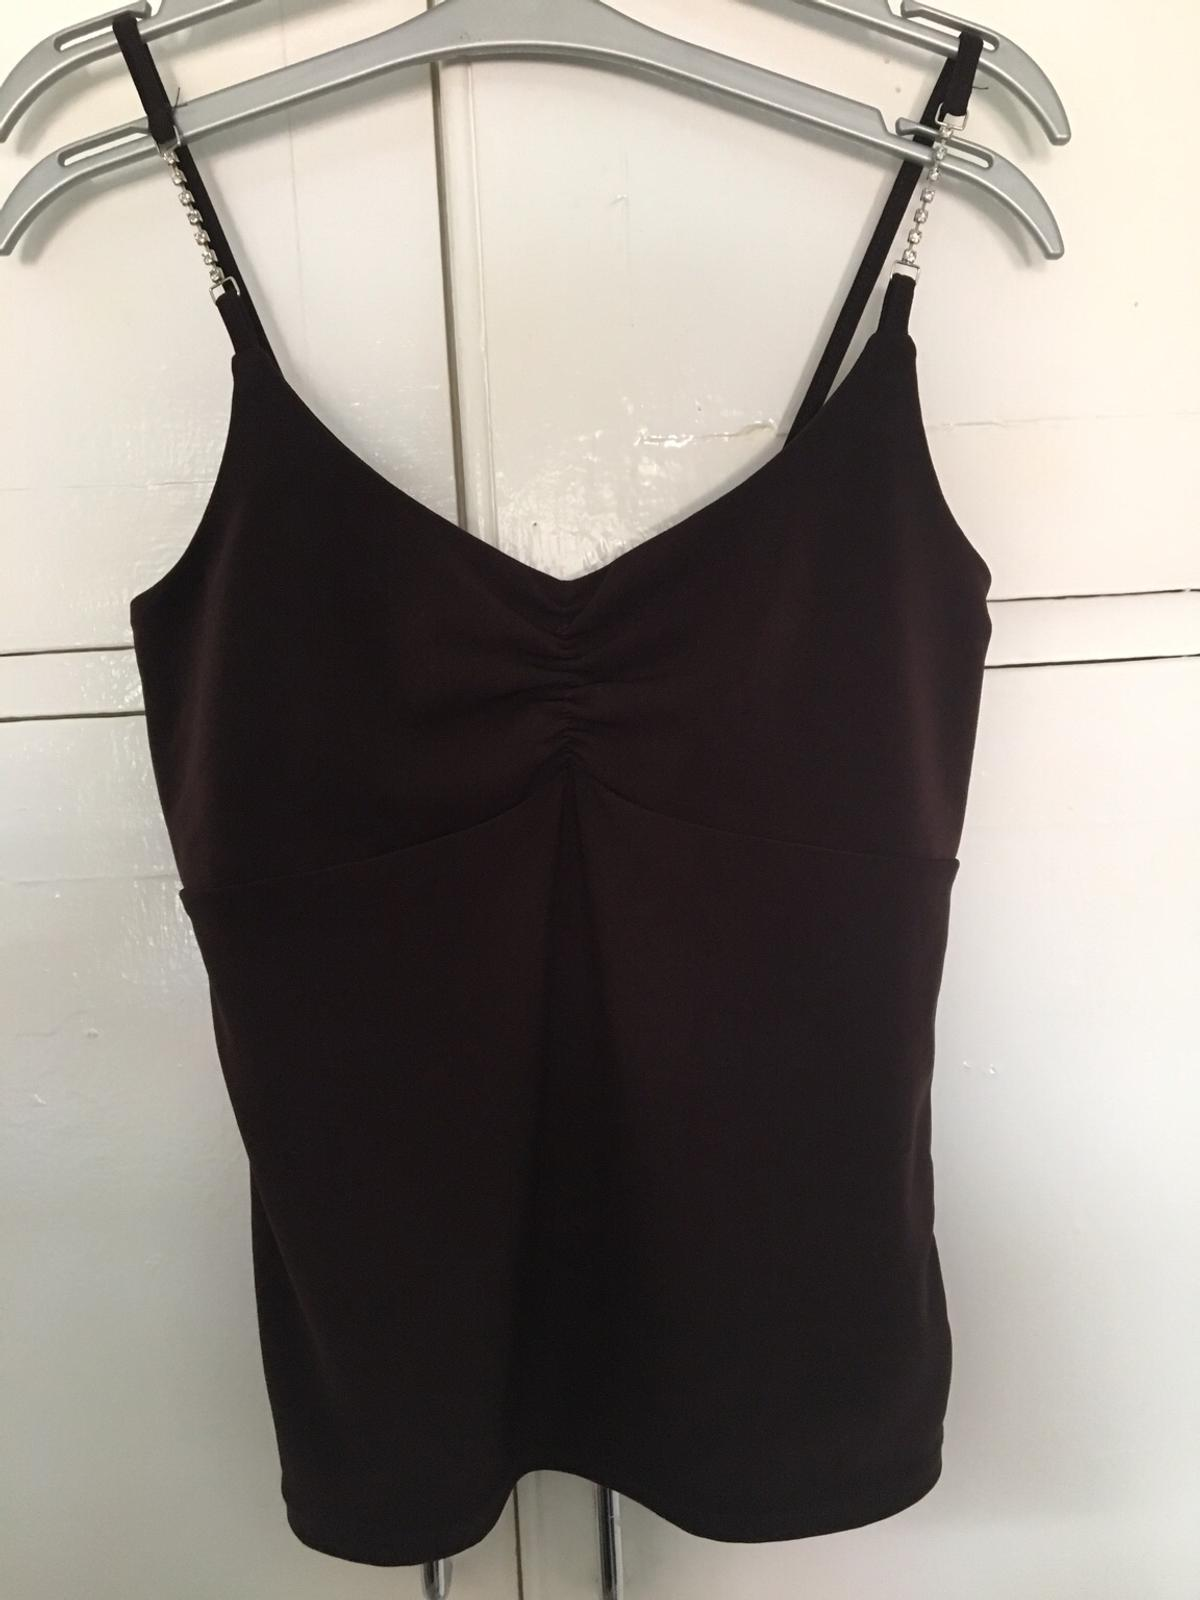 Very good condition. Only worn two times. Petite